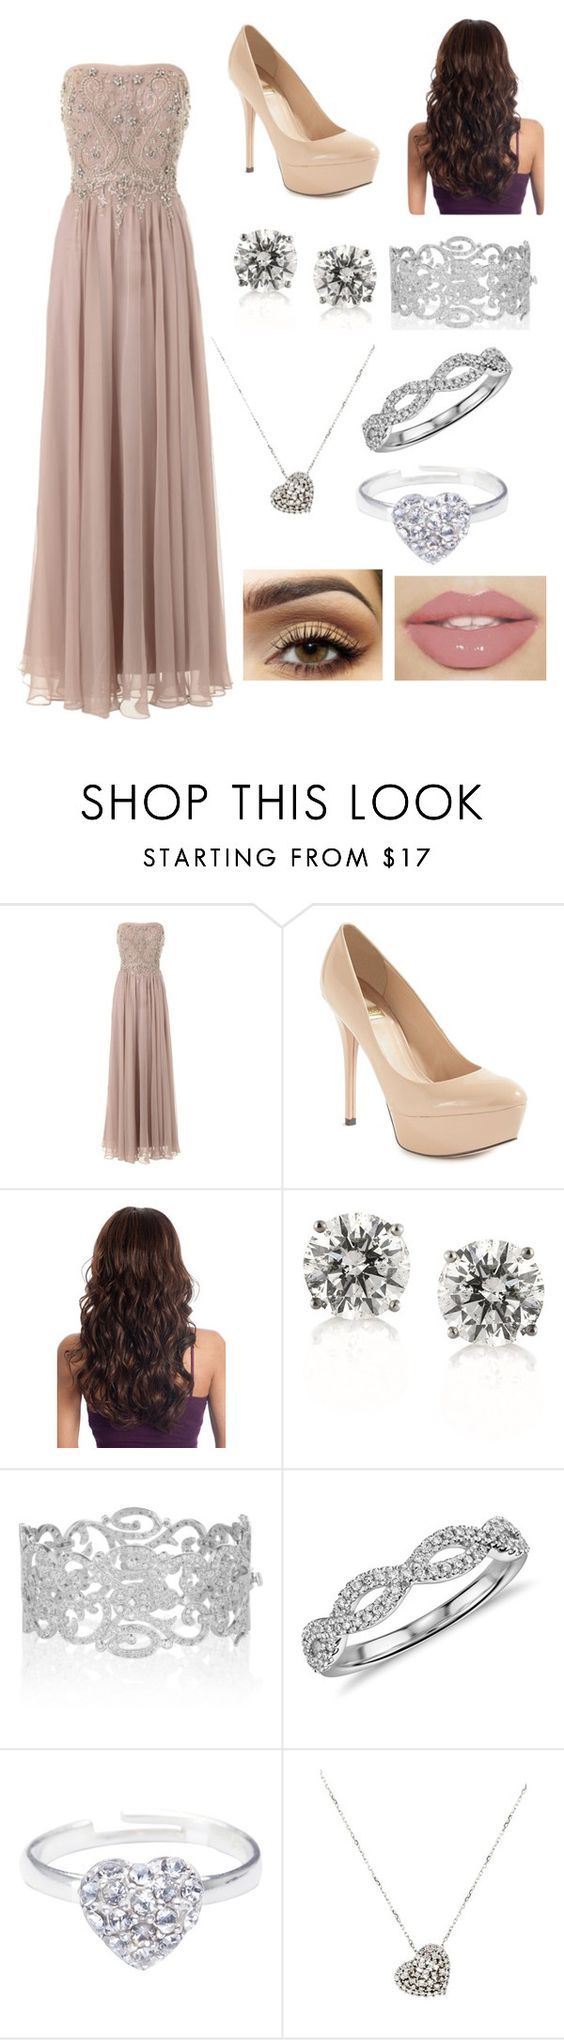 """""""Untitled #20"""" by ambercoffman ❤ liked on Polyvore featuring Barbara Schwarzer, GUESS by Marciano, Kenneth Jay Lane, Blue Nile, Joma, Tom Ford and Rina Limor"""